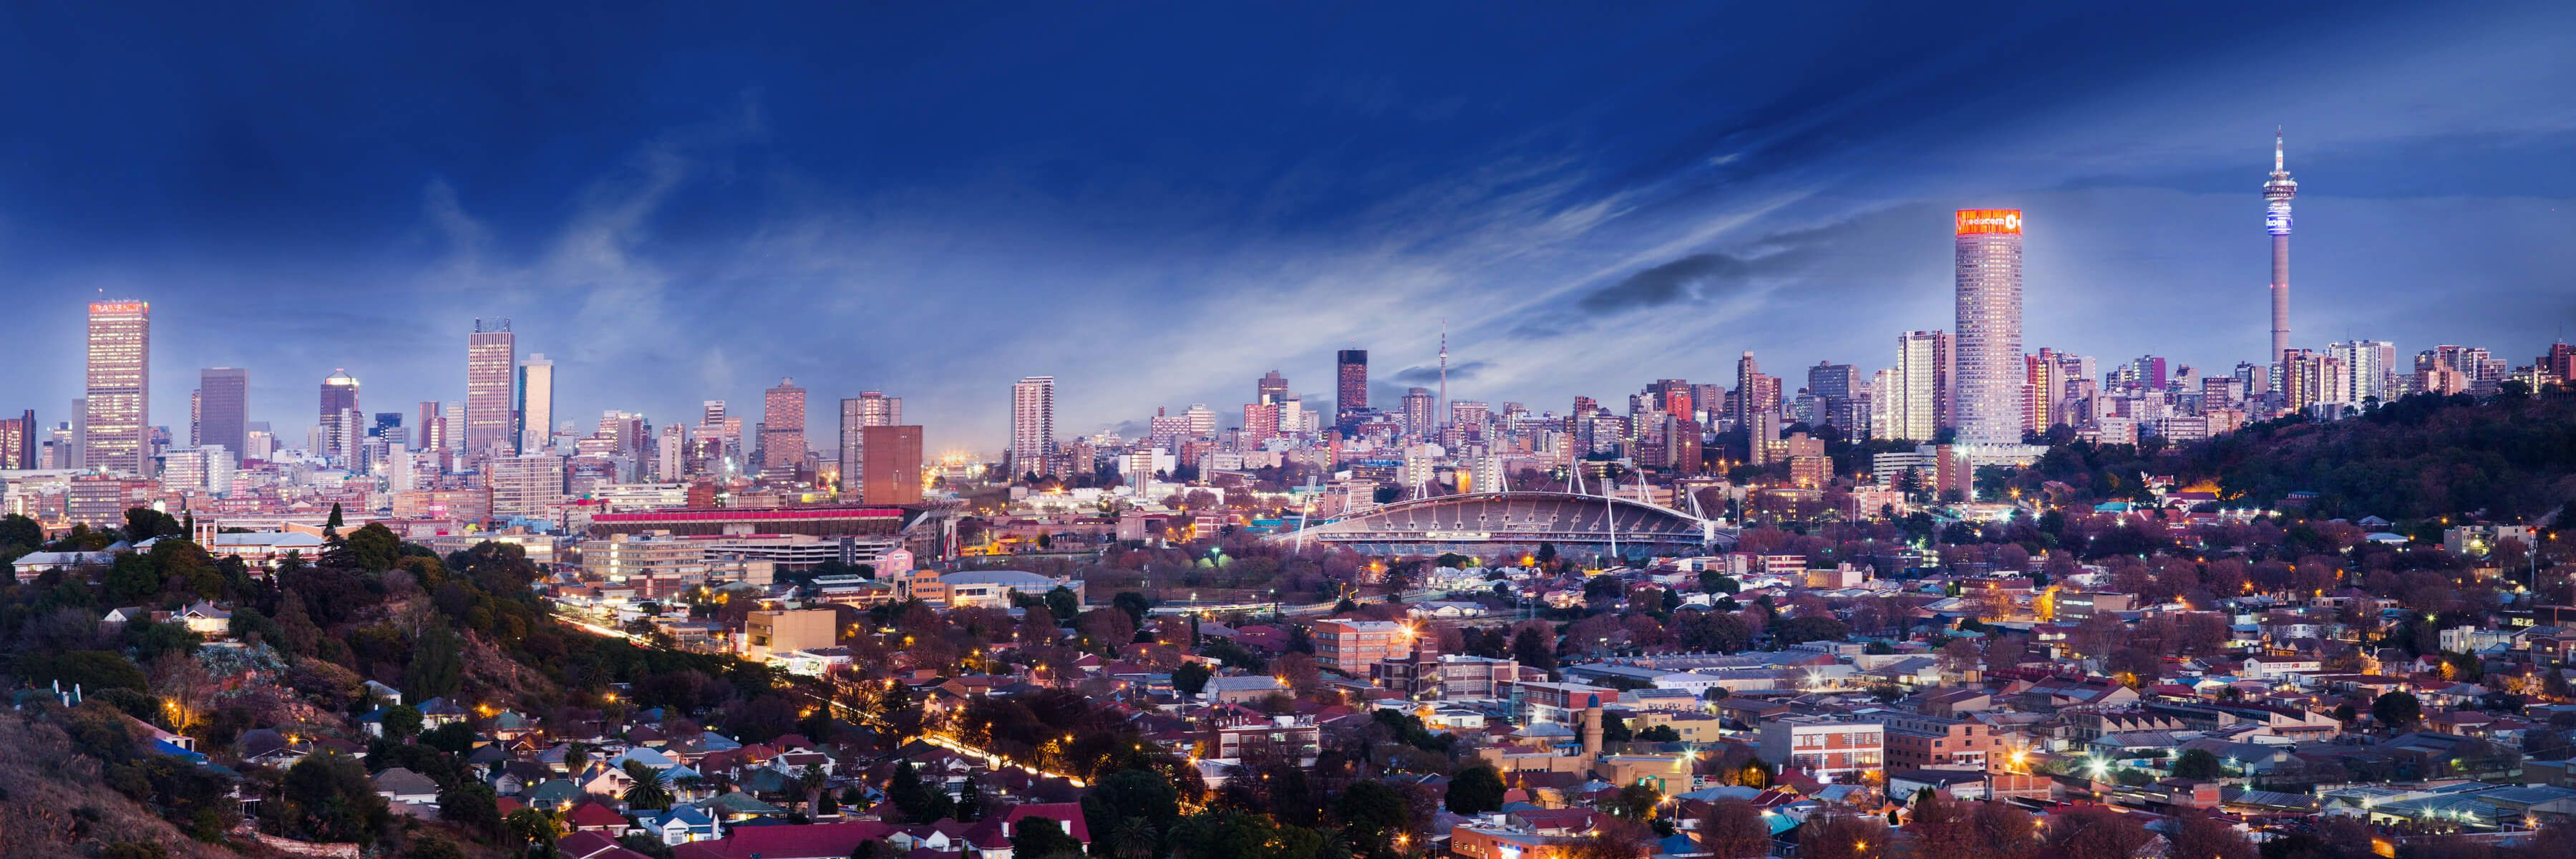 Sasi Wallpaper Johannesburg Skyline At Dusk 5771 Place South